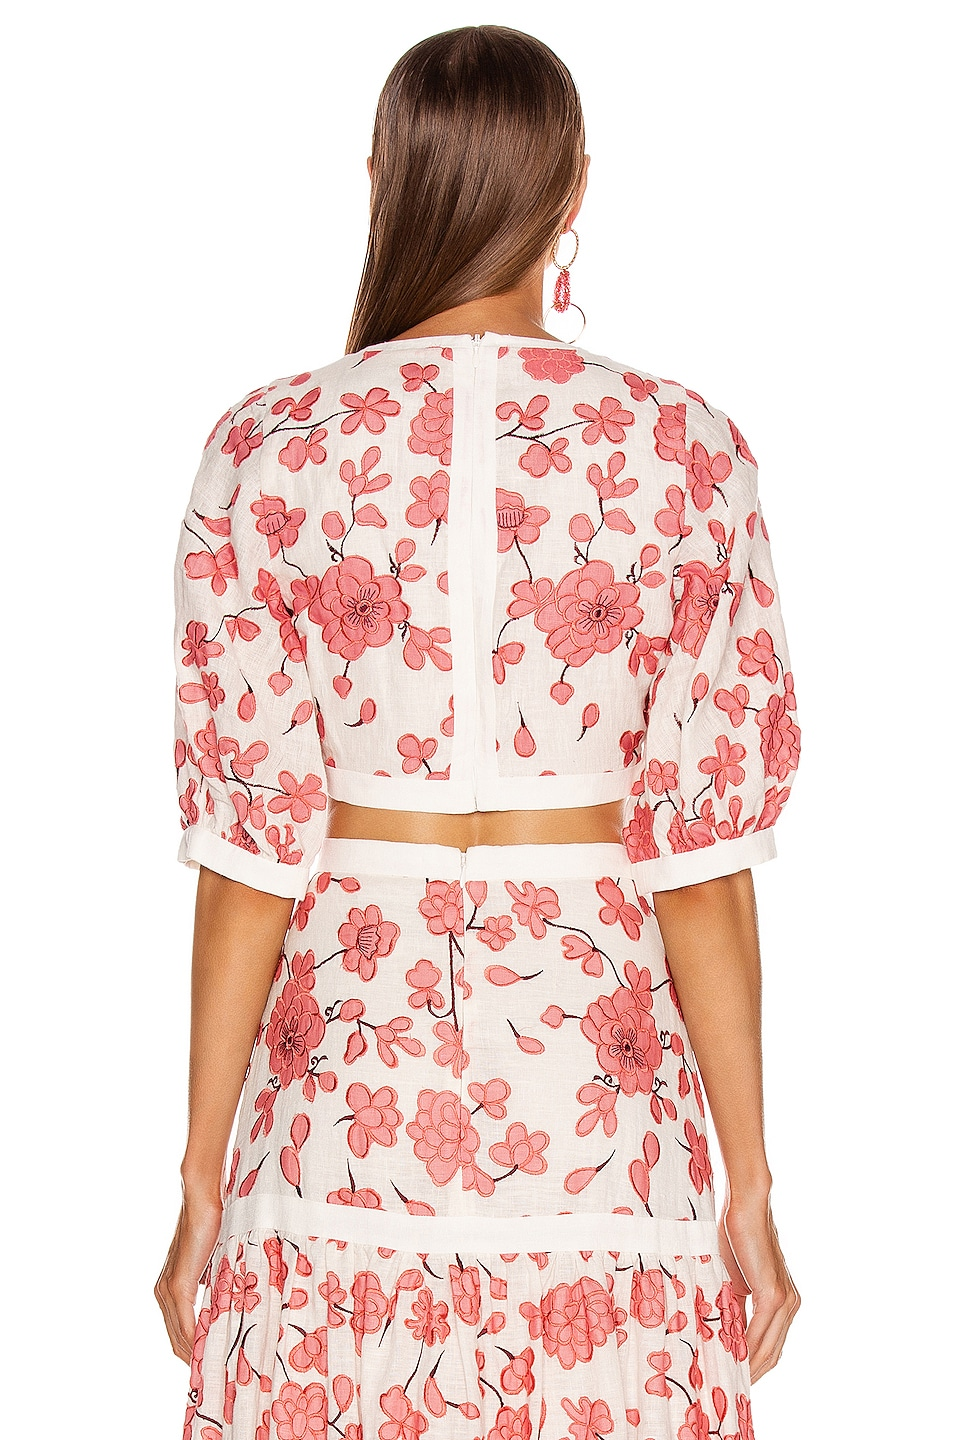 Image 3 of Alexis Jaska Top in Spring Blossom